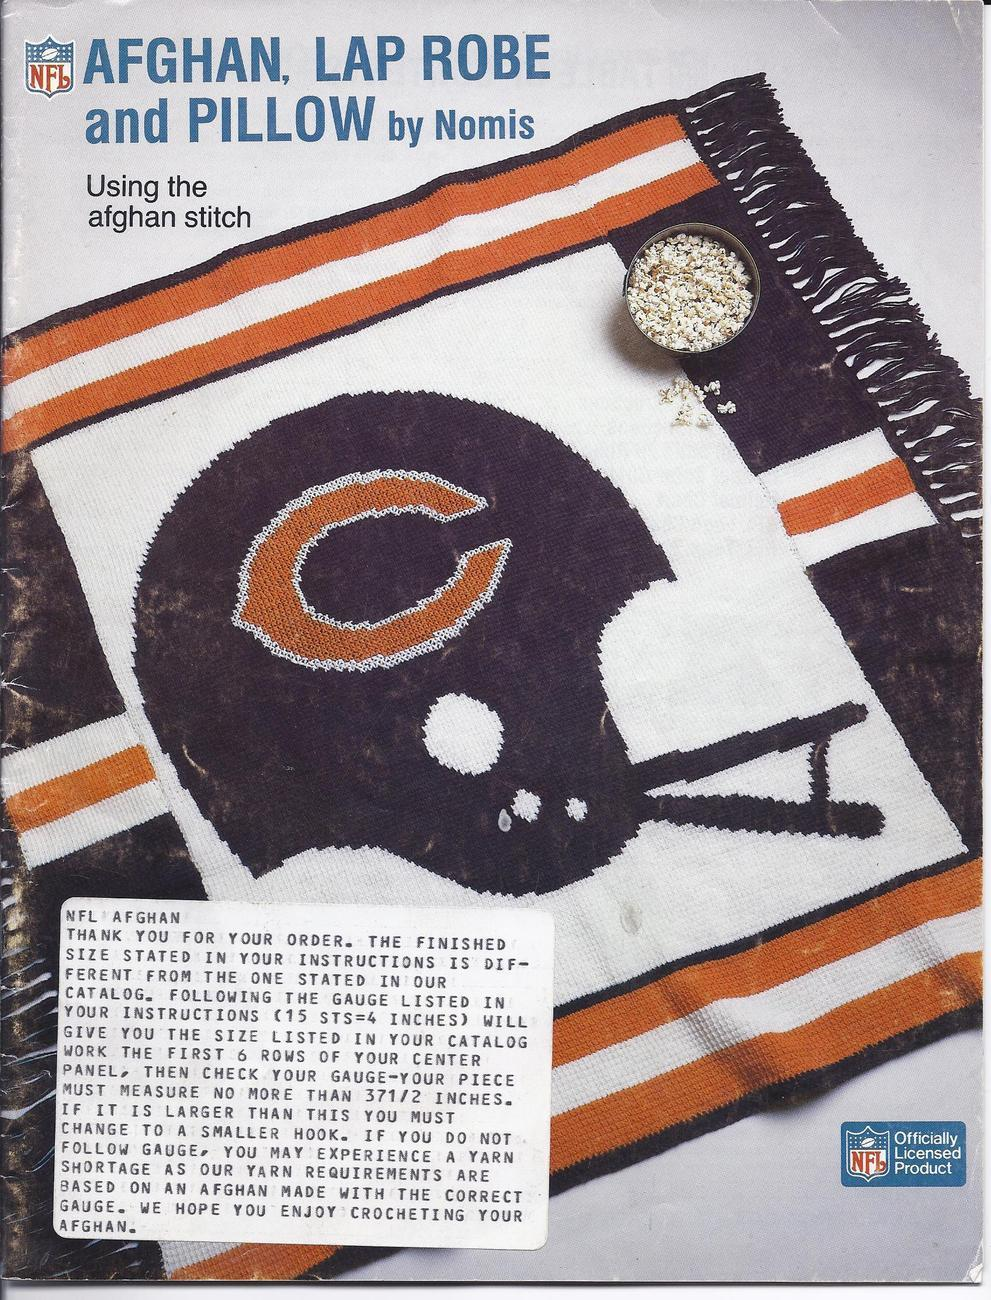 RARE~Nomis~30~NFL Crochet Afghan~Lap Robe & Pillow Patterns Leaflet~HARD TO FIND